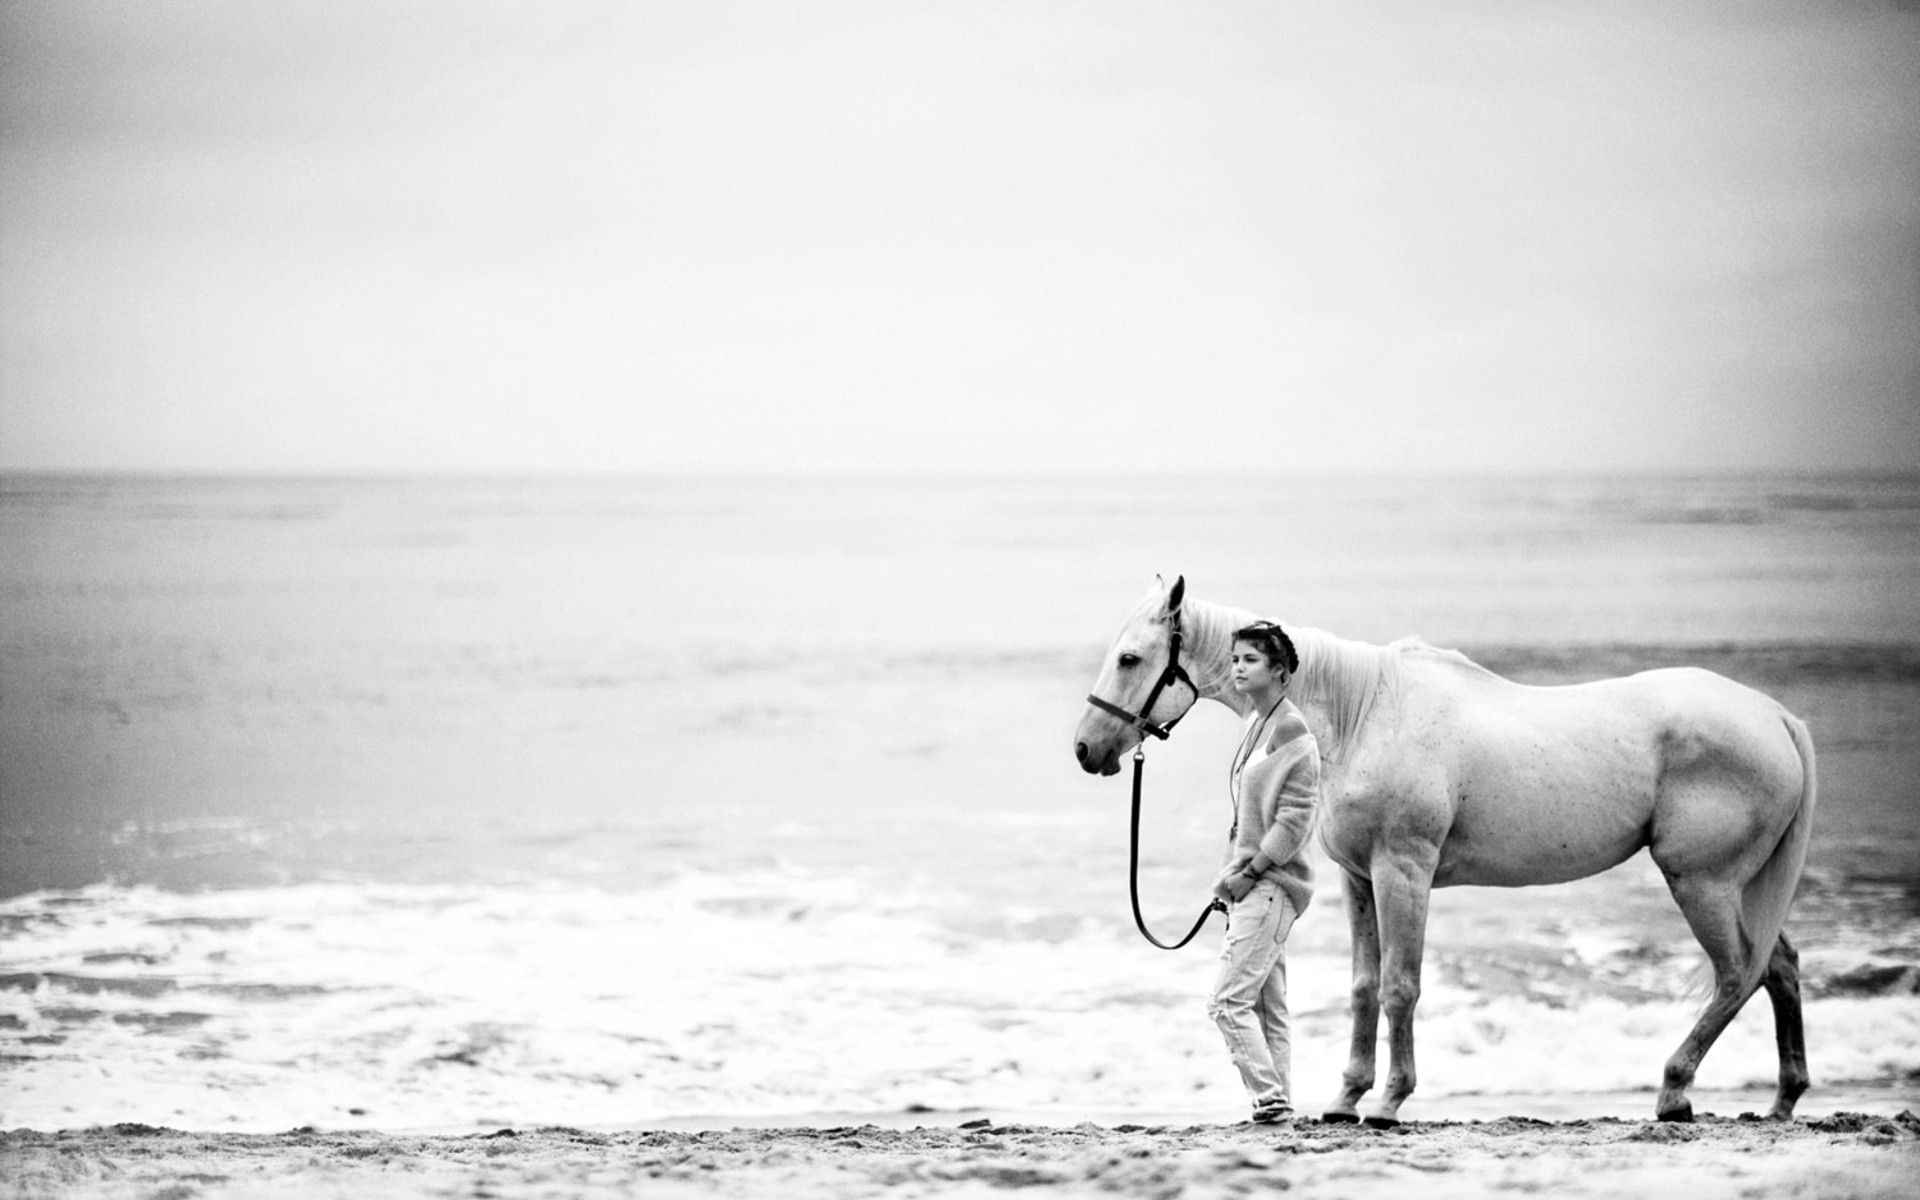 Res: 1920x1200, horse, white, people, sea, sand, seascape, windows, abstract hd wallpaper,  female, wallpapers, sky, download, mood, women, children, black, beaches,  ...